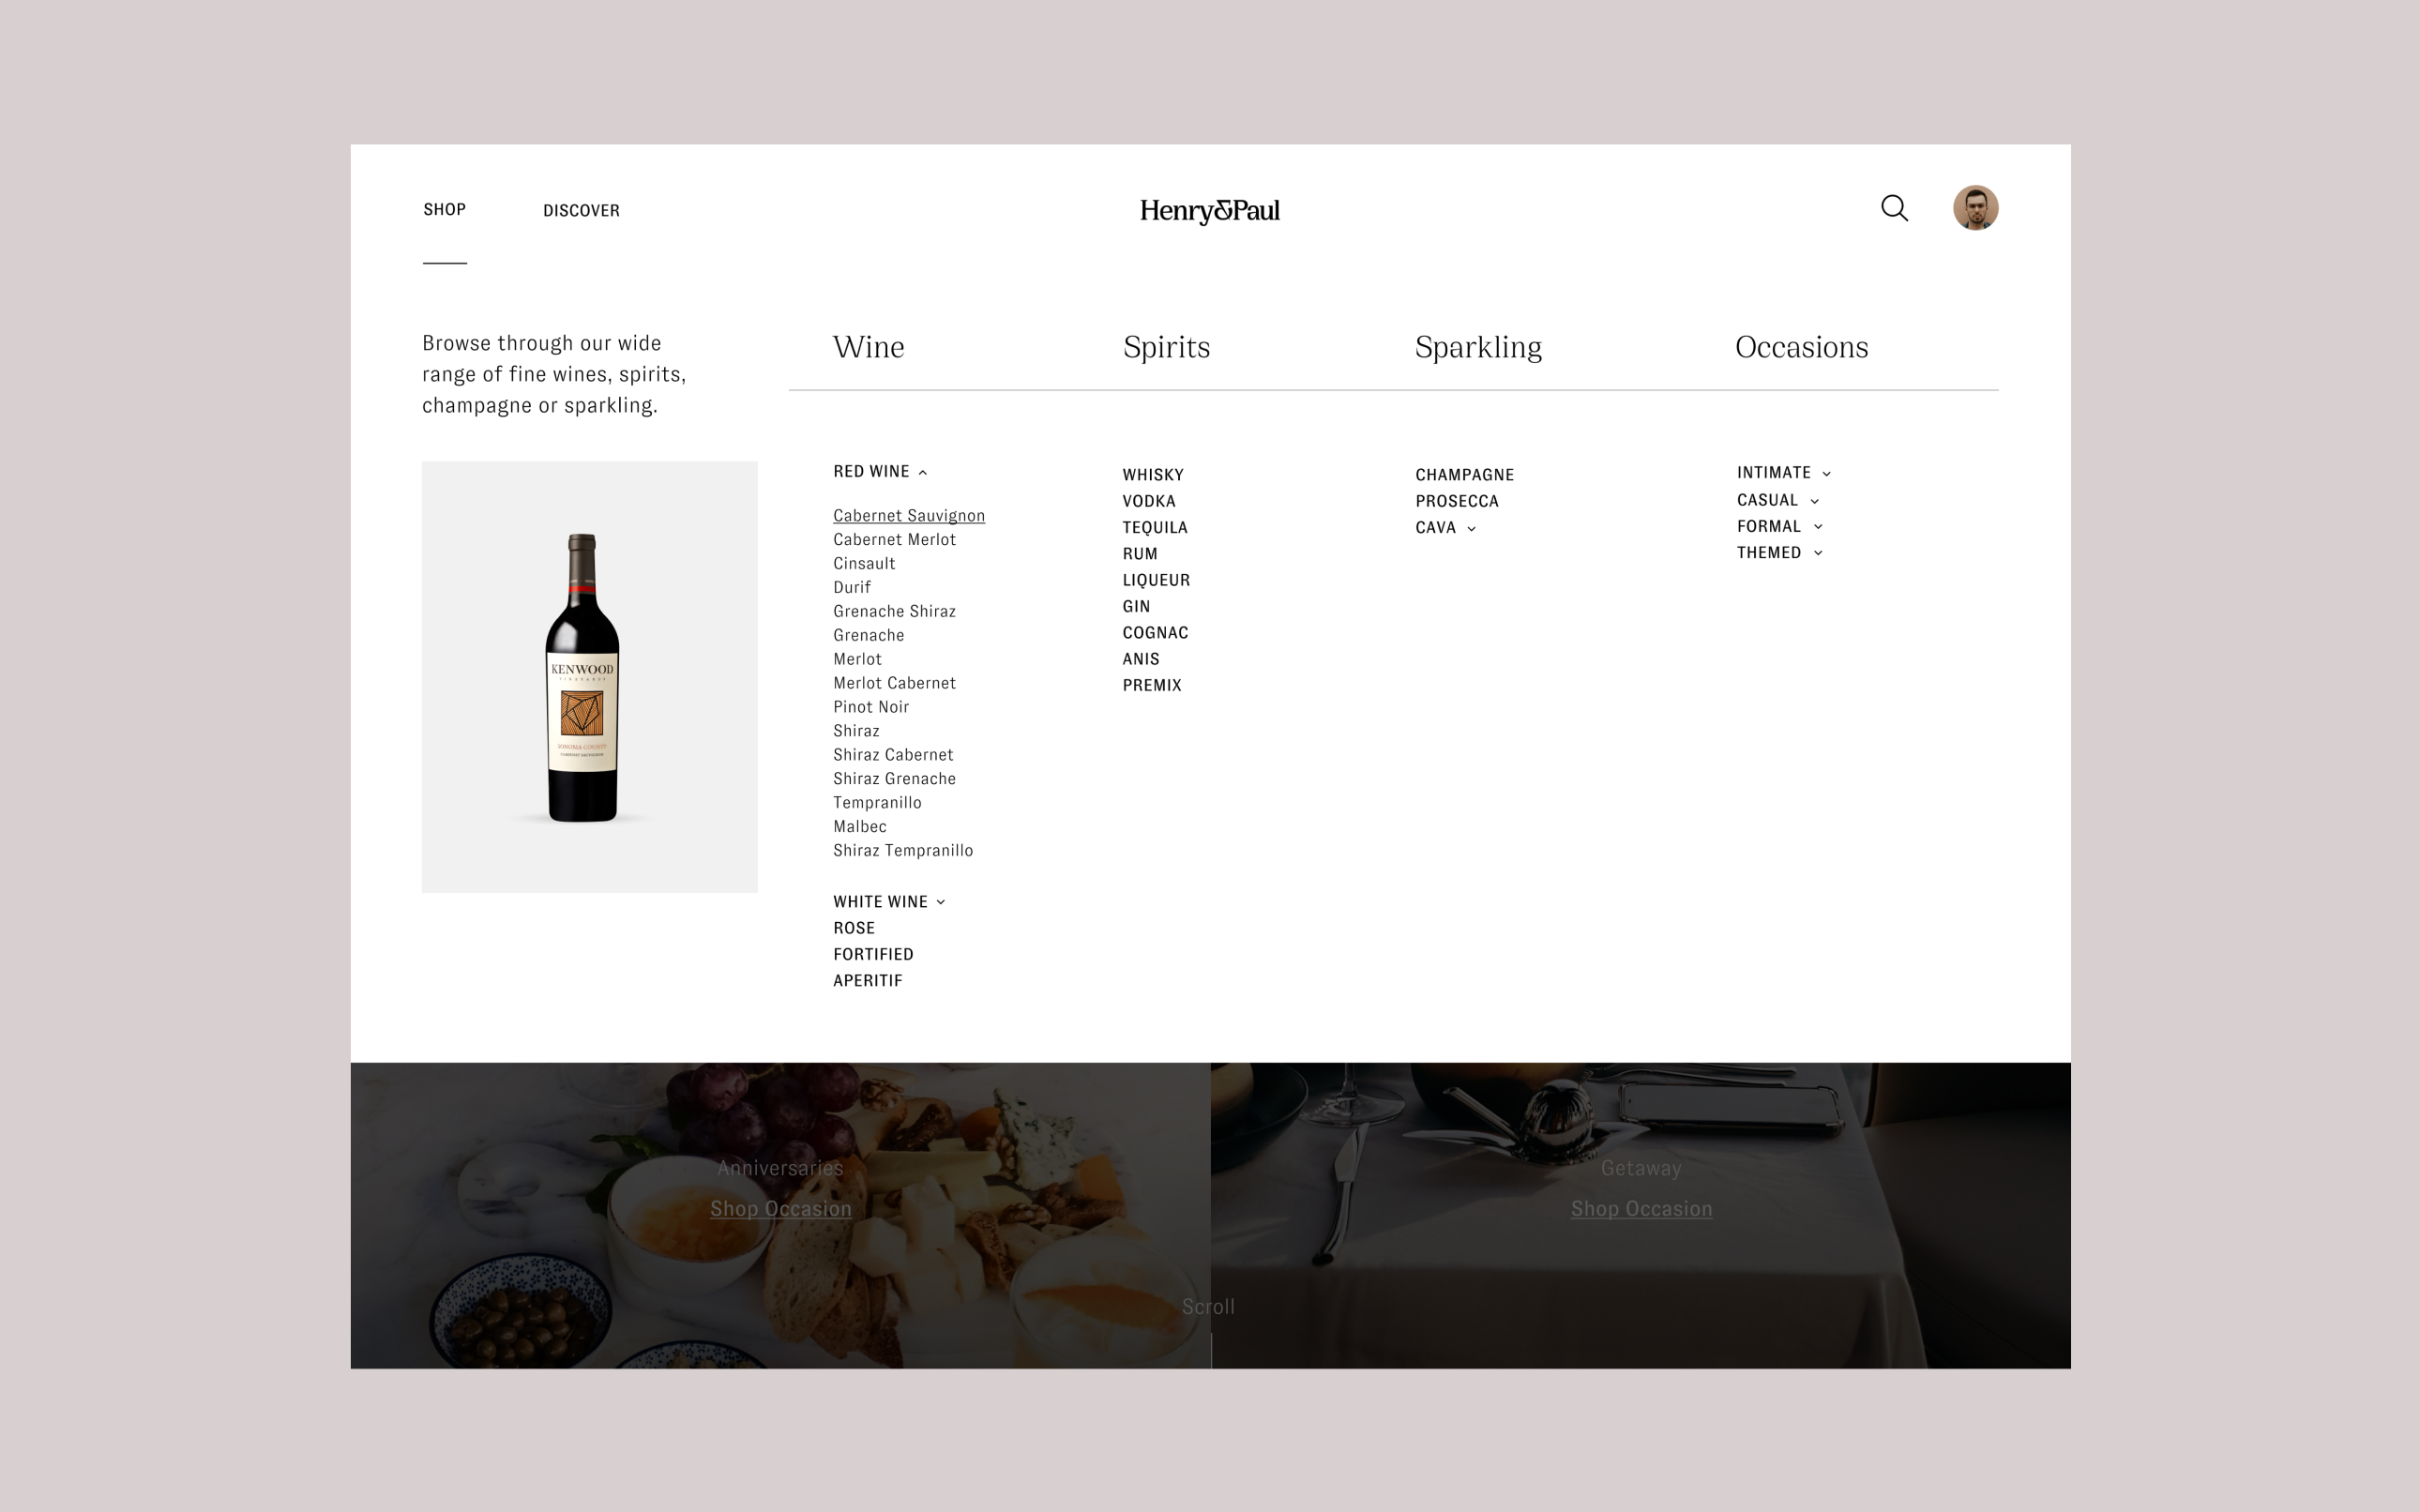 Henry & Paul desktop website, showcasing the drop down menu of all products